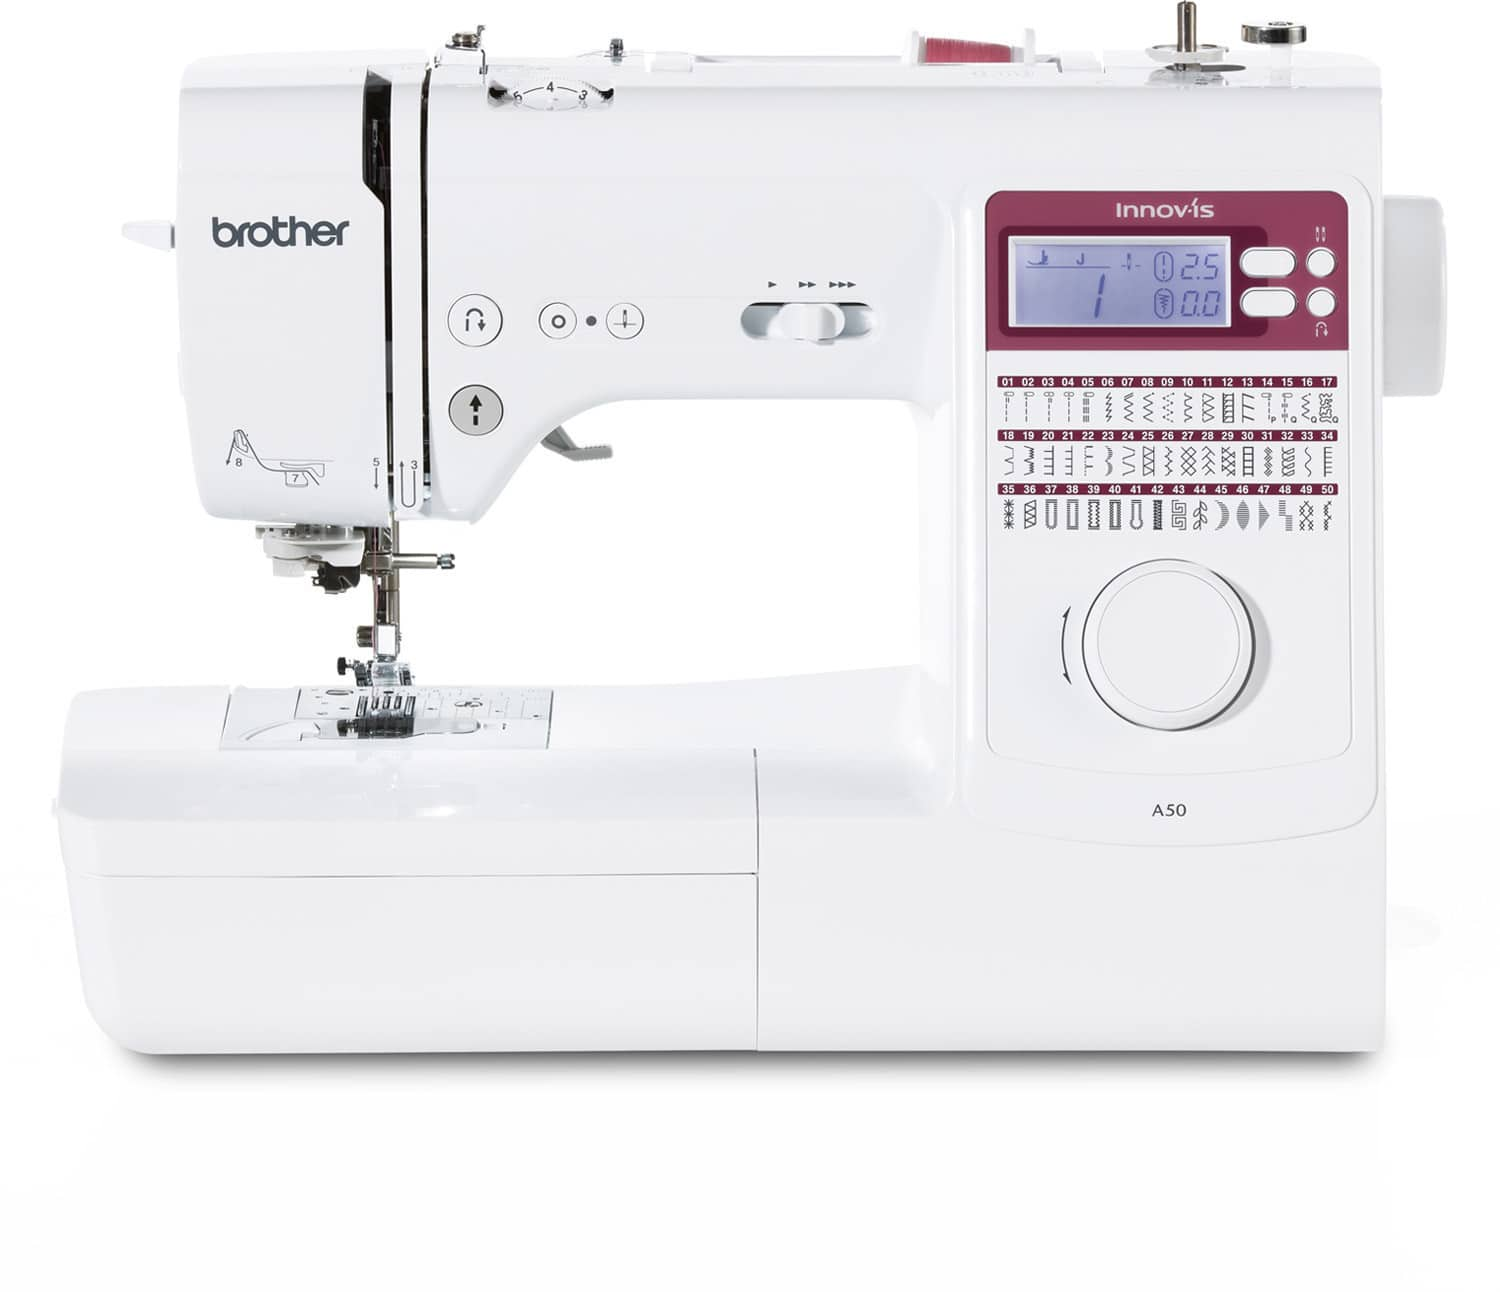 brother innov is A50 Nähmaschine im Test